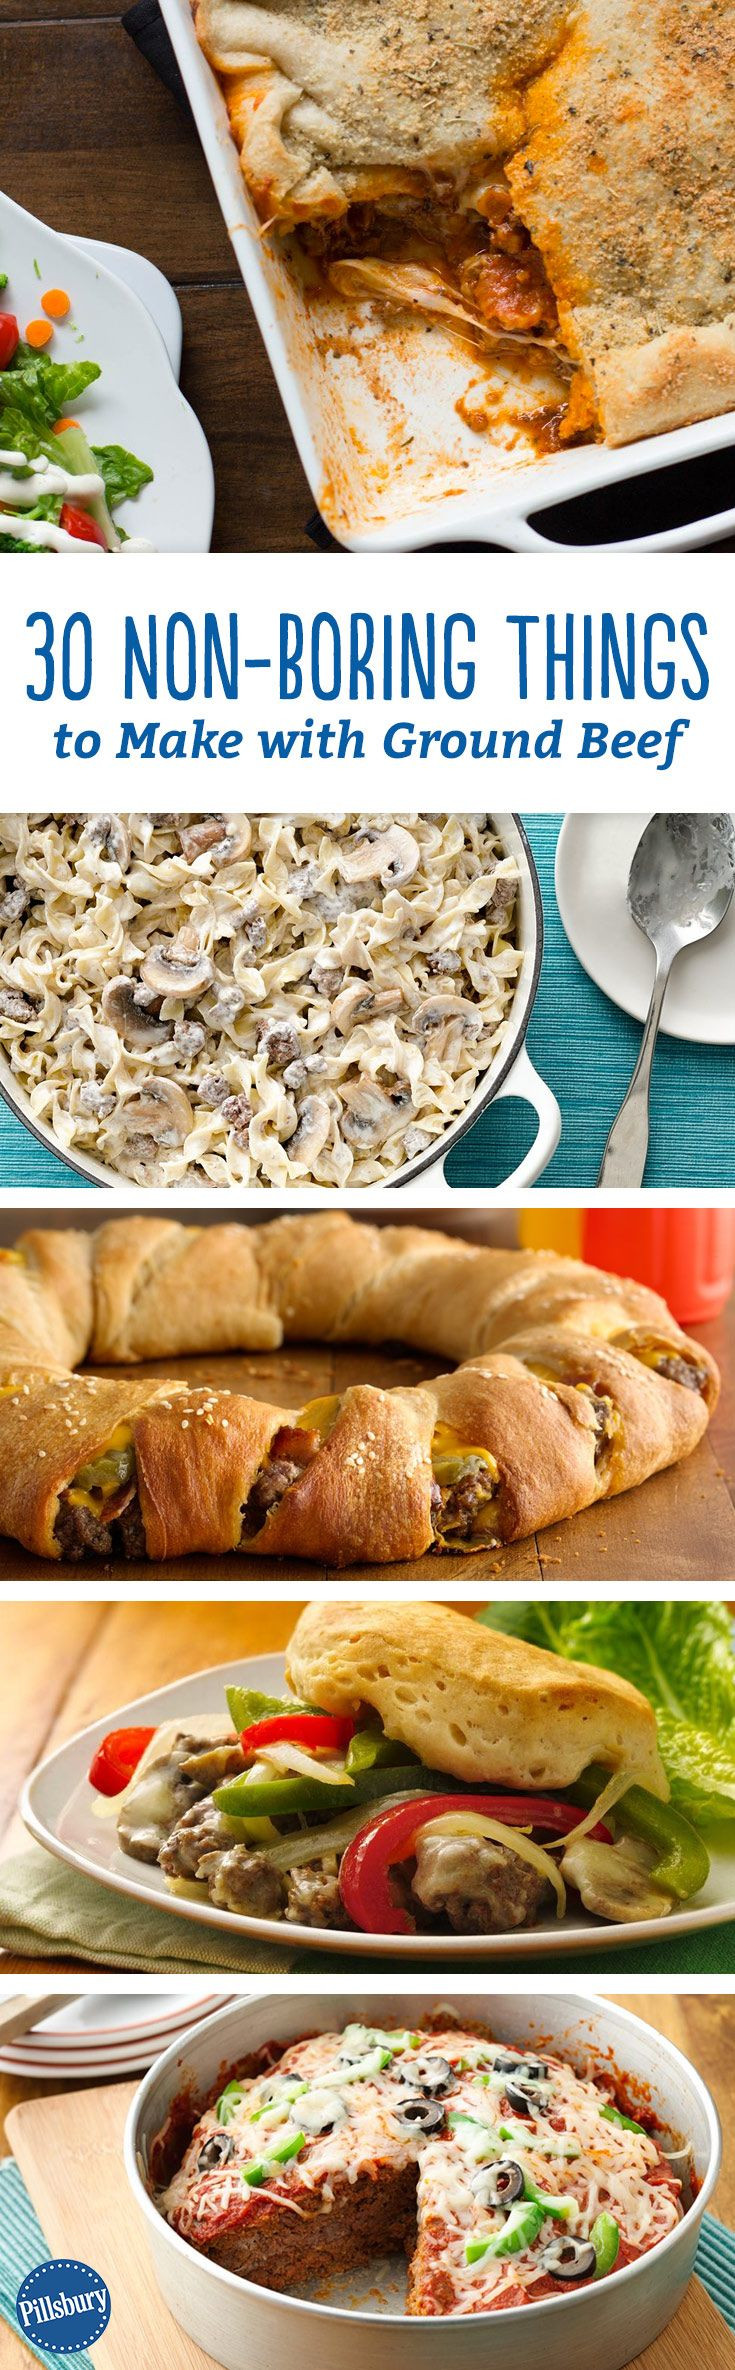 Things To Make With Ground Beef  30 Non Boring Things to Make with Ground Beef